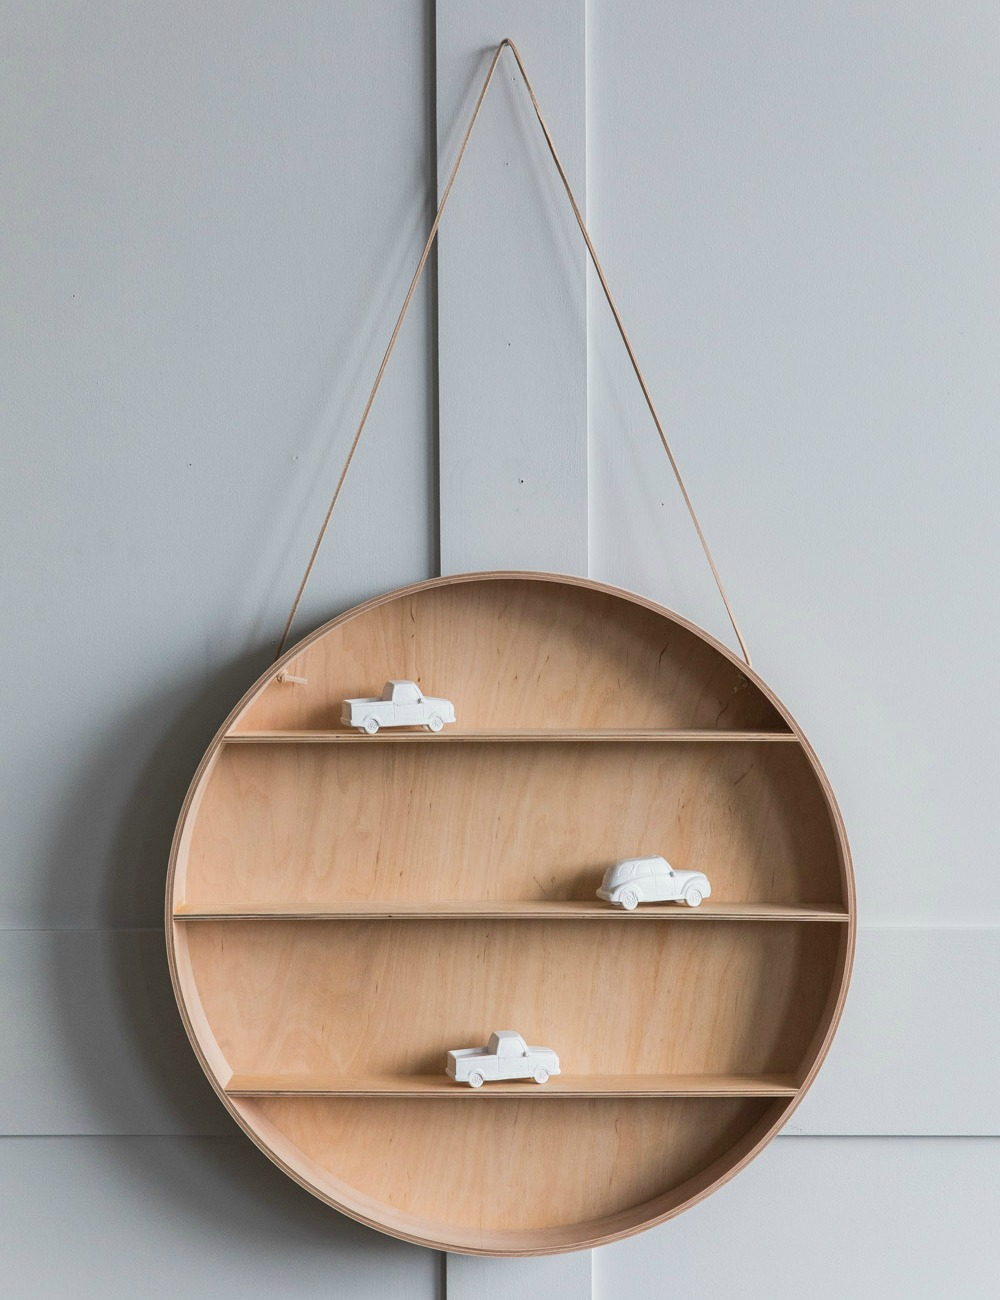 Circular Wooden Shelf 2 copy.jpg